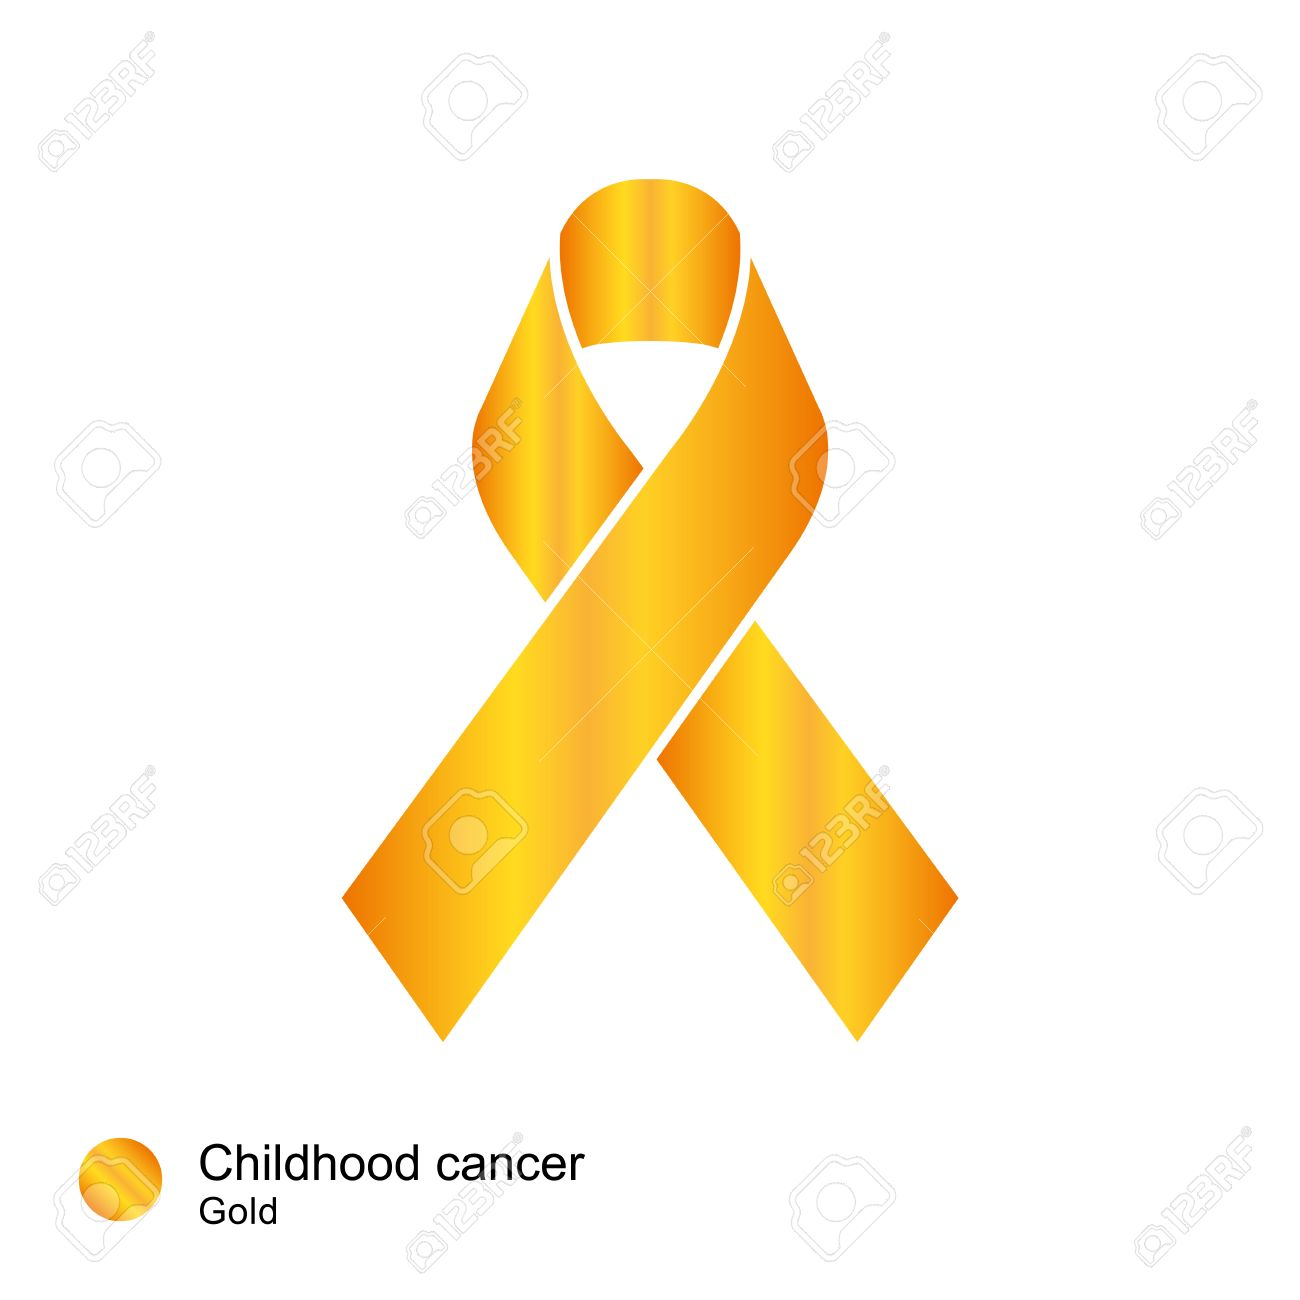 Childhood Cancer Ribbon Vector Royalty Free Cliparts Vectors And